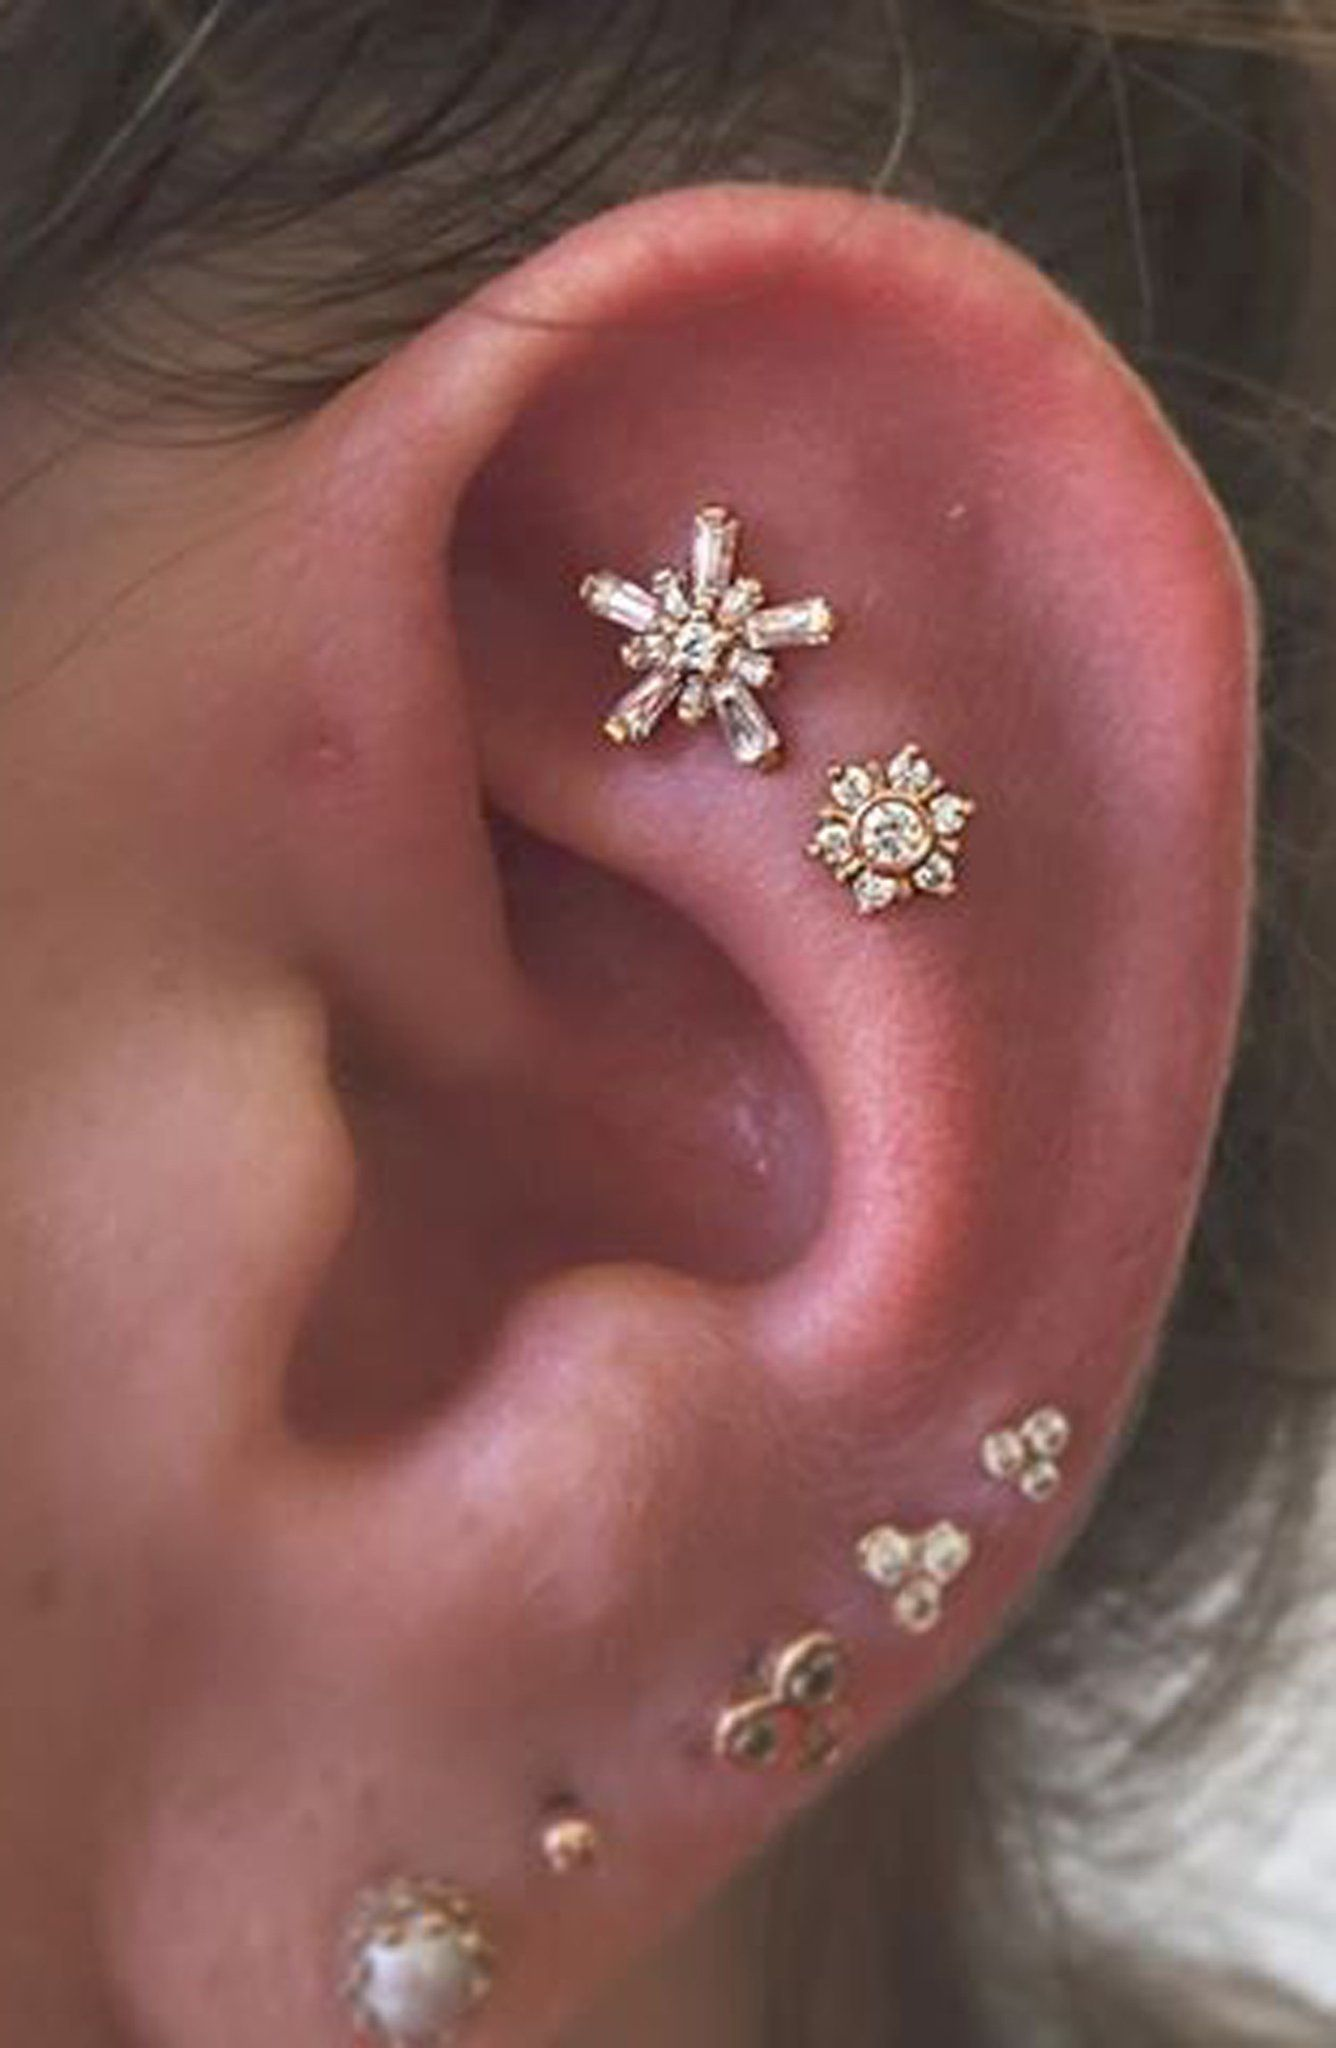 bec0ffffdca0 Small Ear Piercing Ideas at MyBodiArt.com - Aretes Oreja - Crystal Star  Flower Constellation Earring Stud 16G